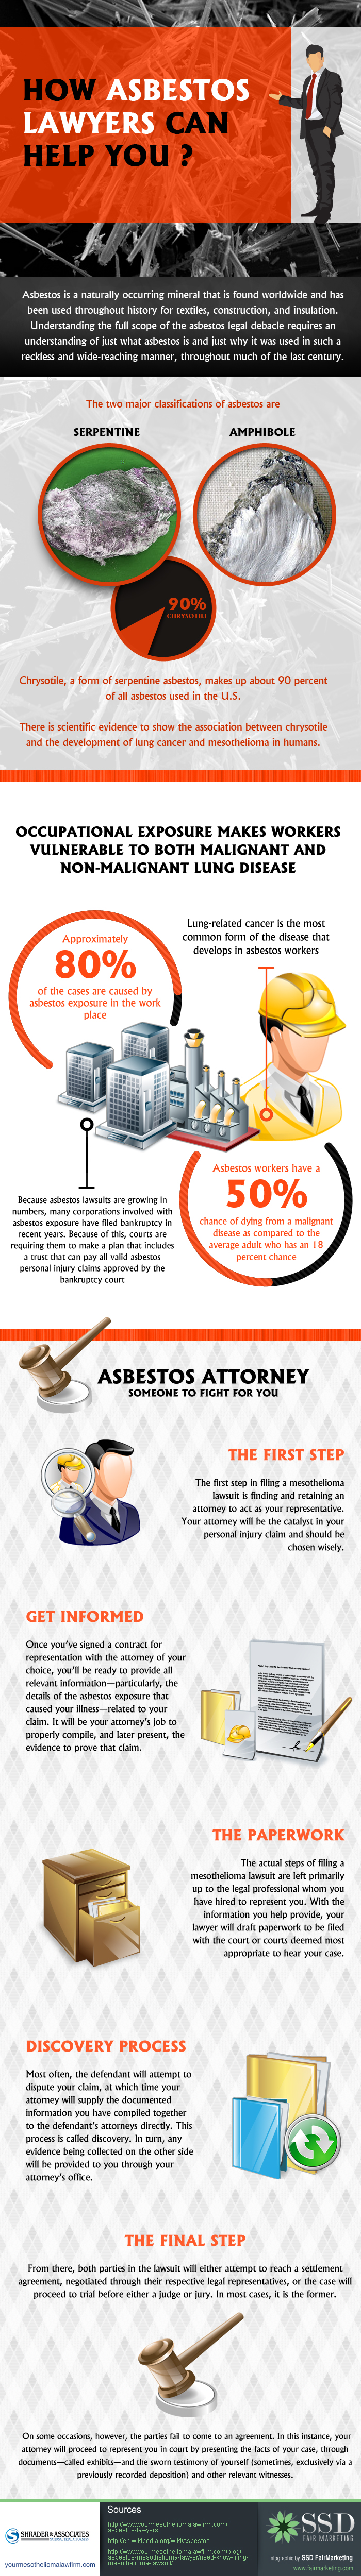 Asbestos Lawyers Infographic